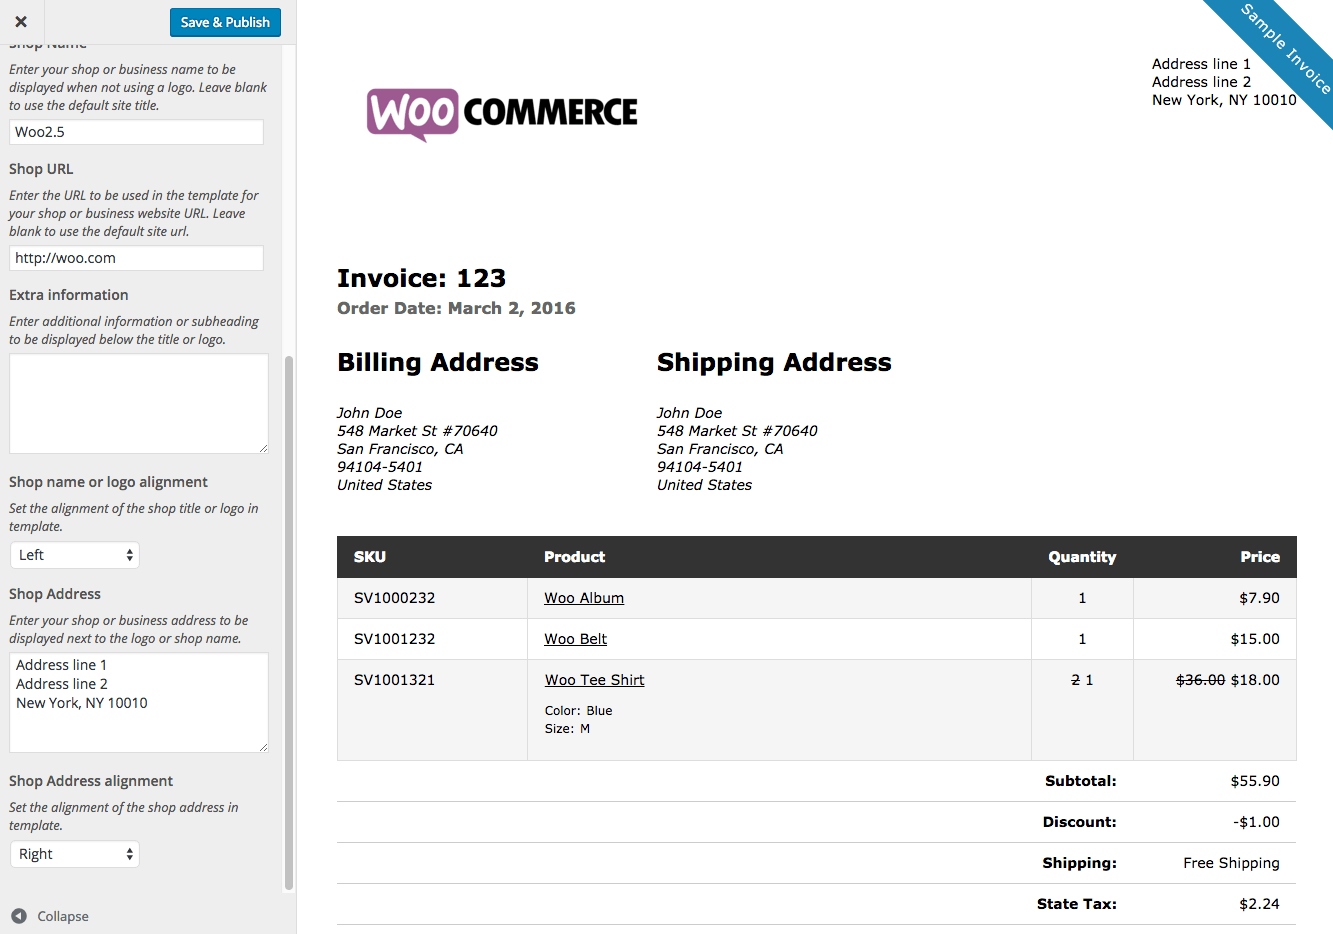 Occupyhistoryus  Seductive Woocommerce Print Invoices Amp Packing Lists  Woocommerce Docs With Fair Woocommerce Print Invoices  Packing Lists Customizer With Archaic Example Of Simple Invoice Also Travel Agency Invoice Format In Addition Invoice Software For Mac Free And Proforma Invoice Form As Well As Po Invoices Additionally Invoice Templates Free Download From Docswoocommercecom With Occupyhistoryus  Fair Woocommerce Print Invoices Amp Packing Lists  Woocommerce Docs With Archaic Woocommerce Print Invoices  Packing Lists Customizer And Seductive Example Of Simple Invoice Also Travel Agency Invoice Format In Addition Invoice Software For Mac Free From Docswoocommercecom